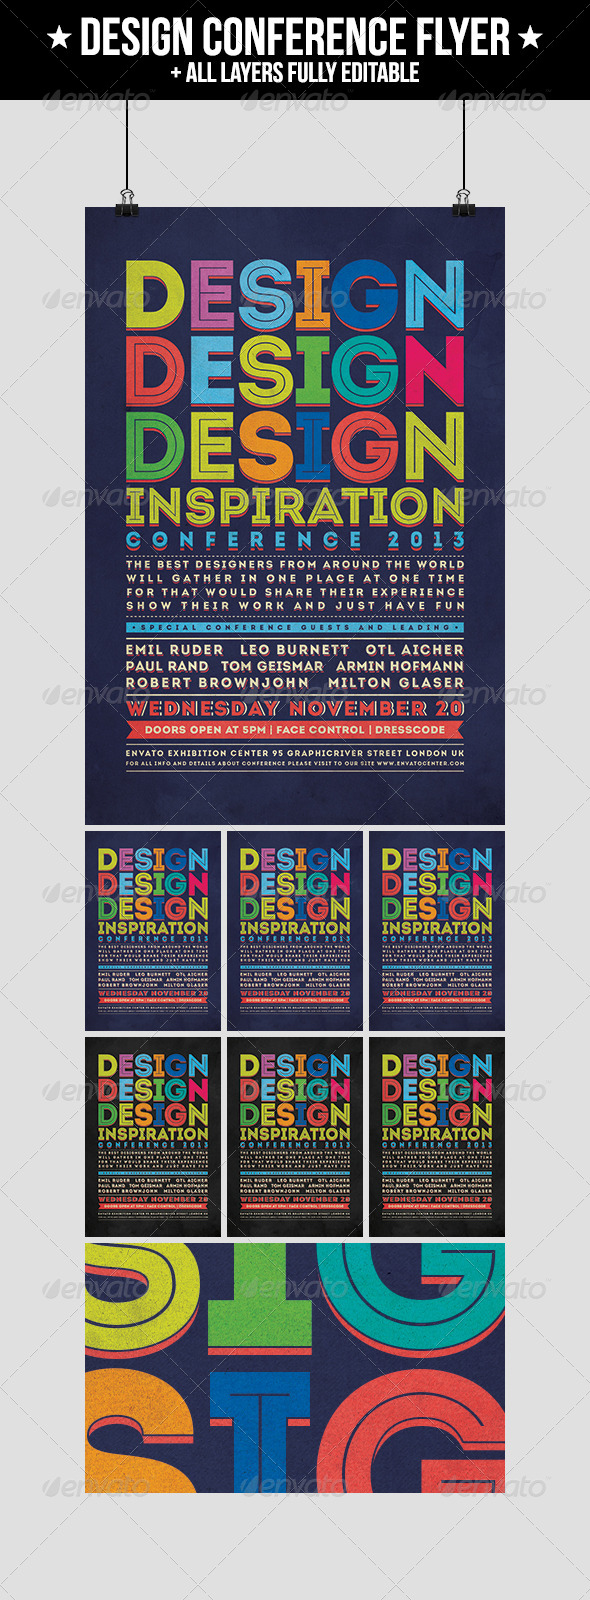 Design Conference Flyer - Events Flyers